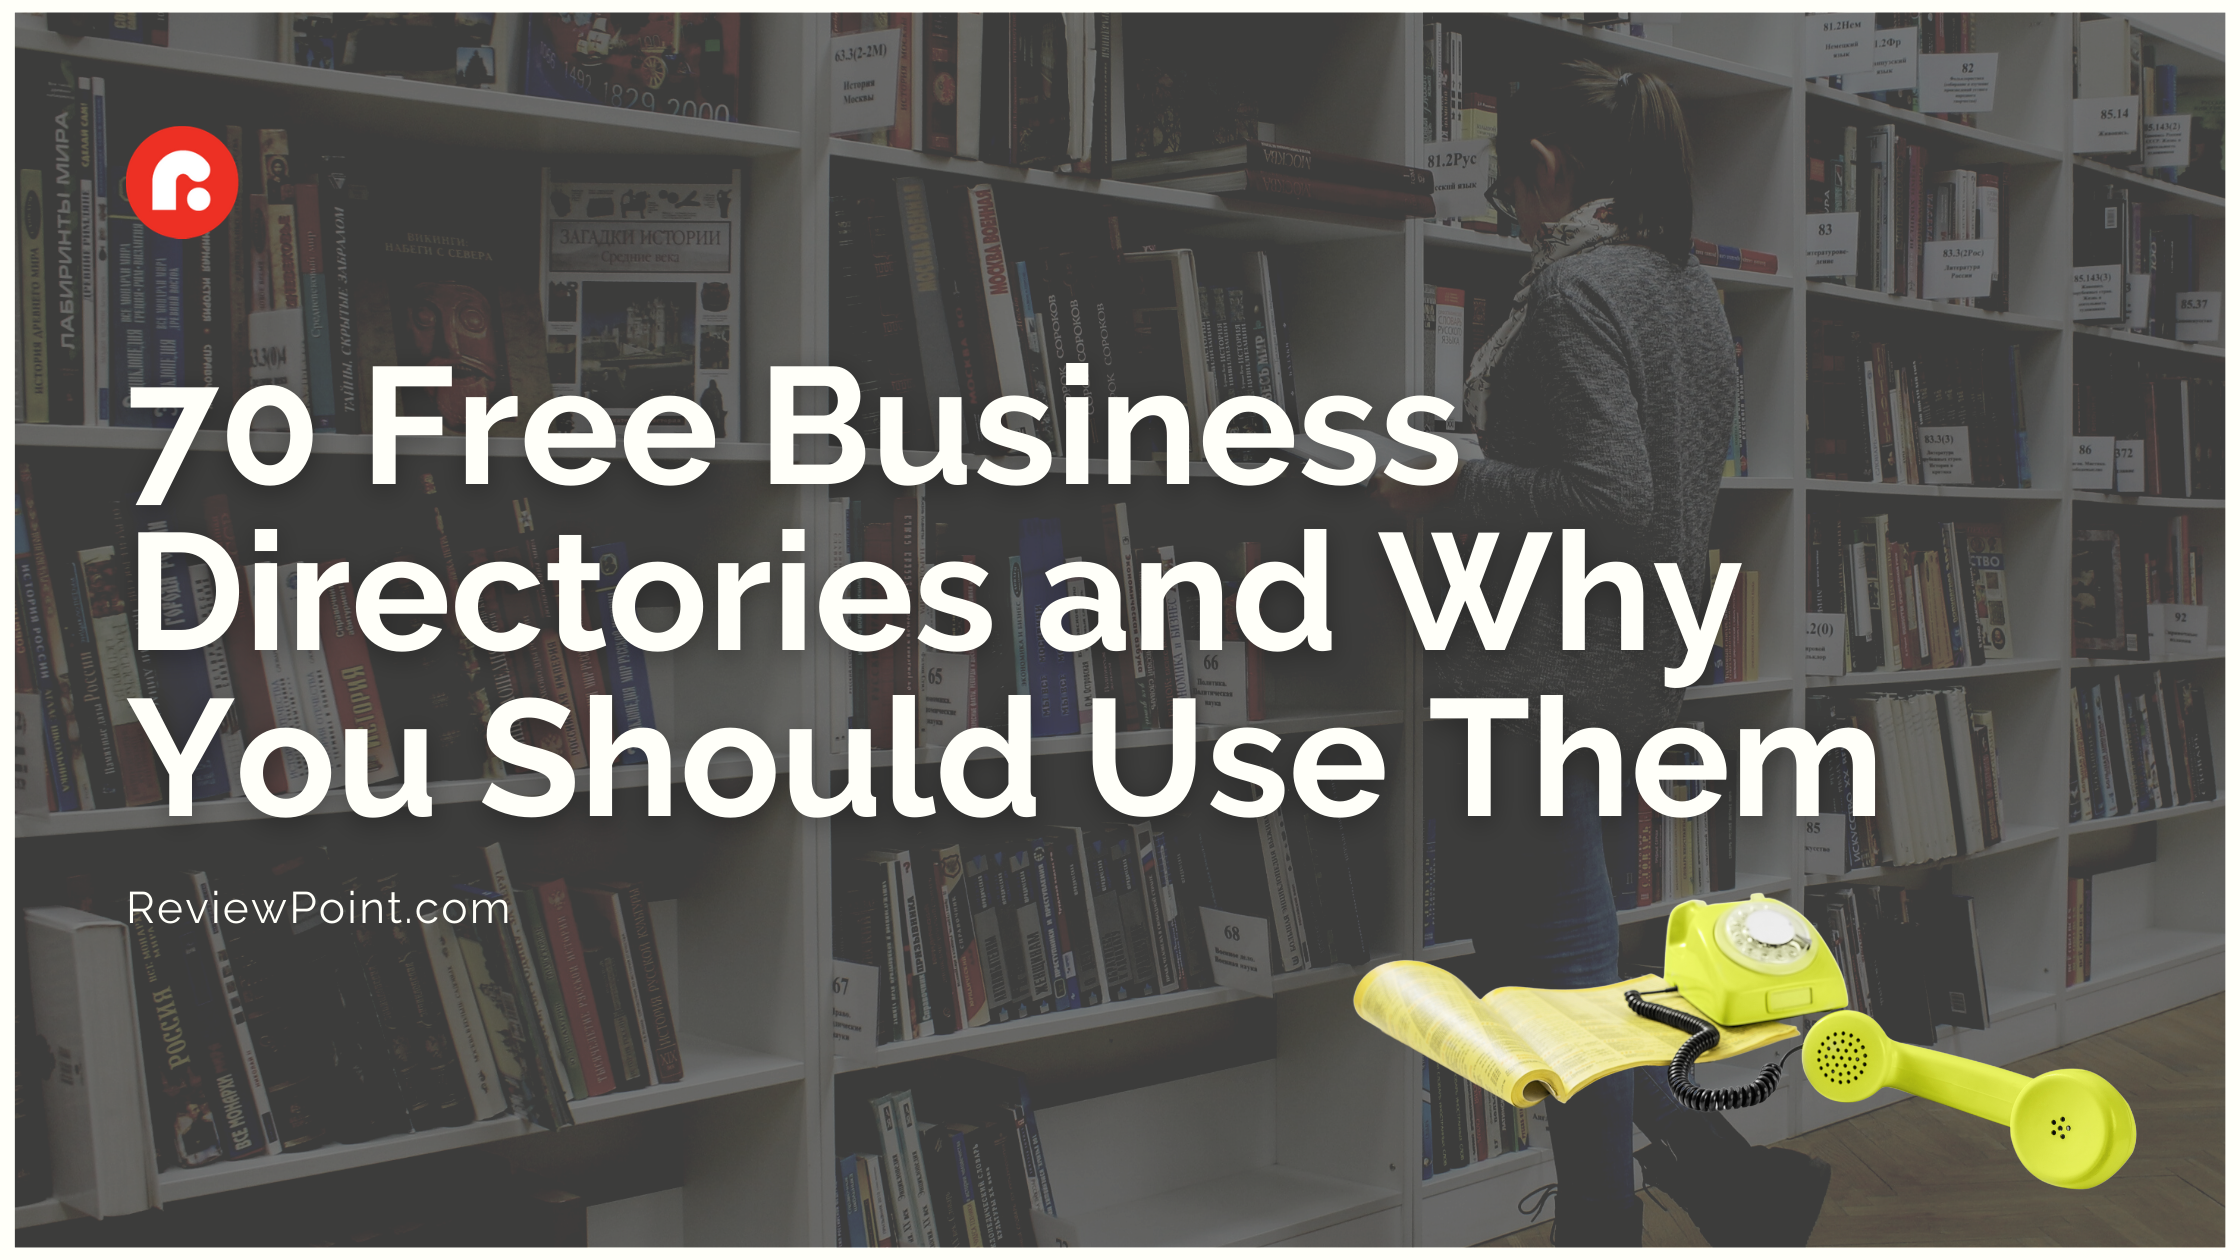 70 Free Business Directories and Why You Should Use Them